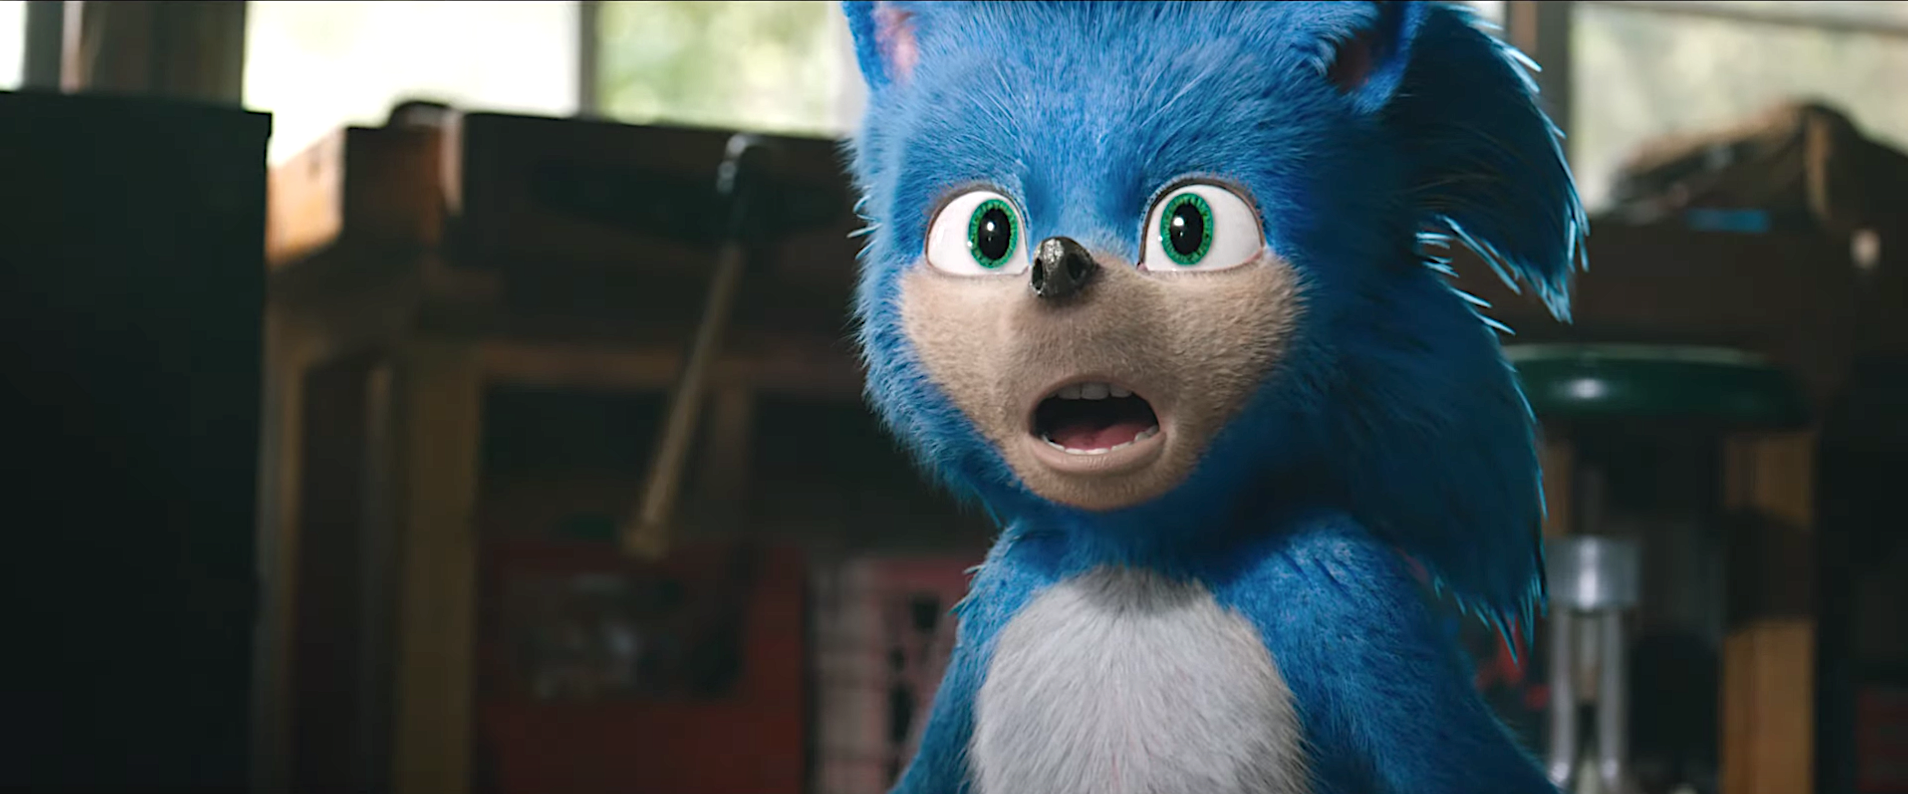 The Internet Successfully Bullied the Sonic Movie Director Into Changing That Creepy Blue Hedgehog